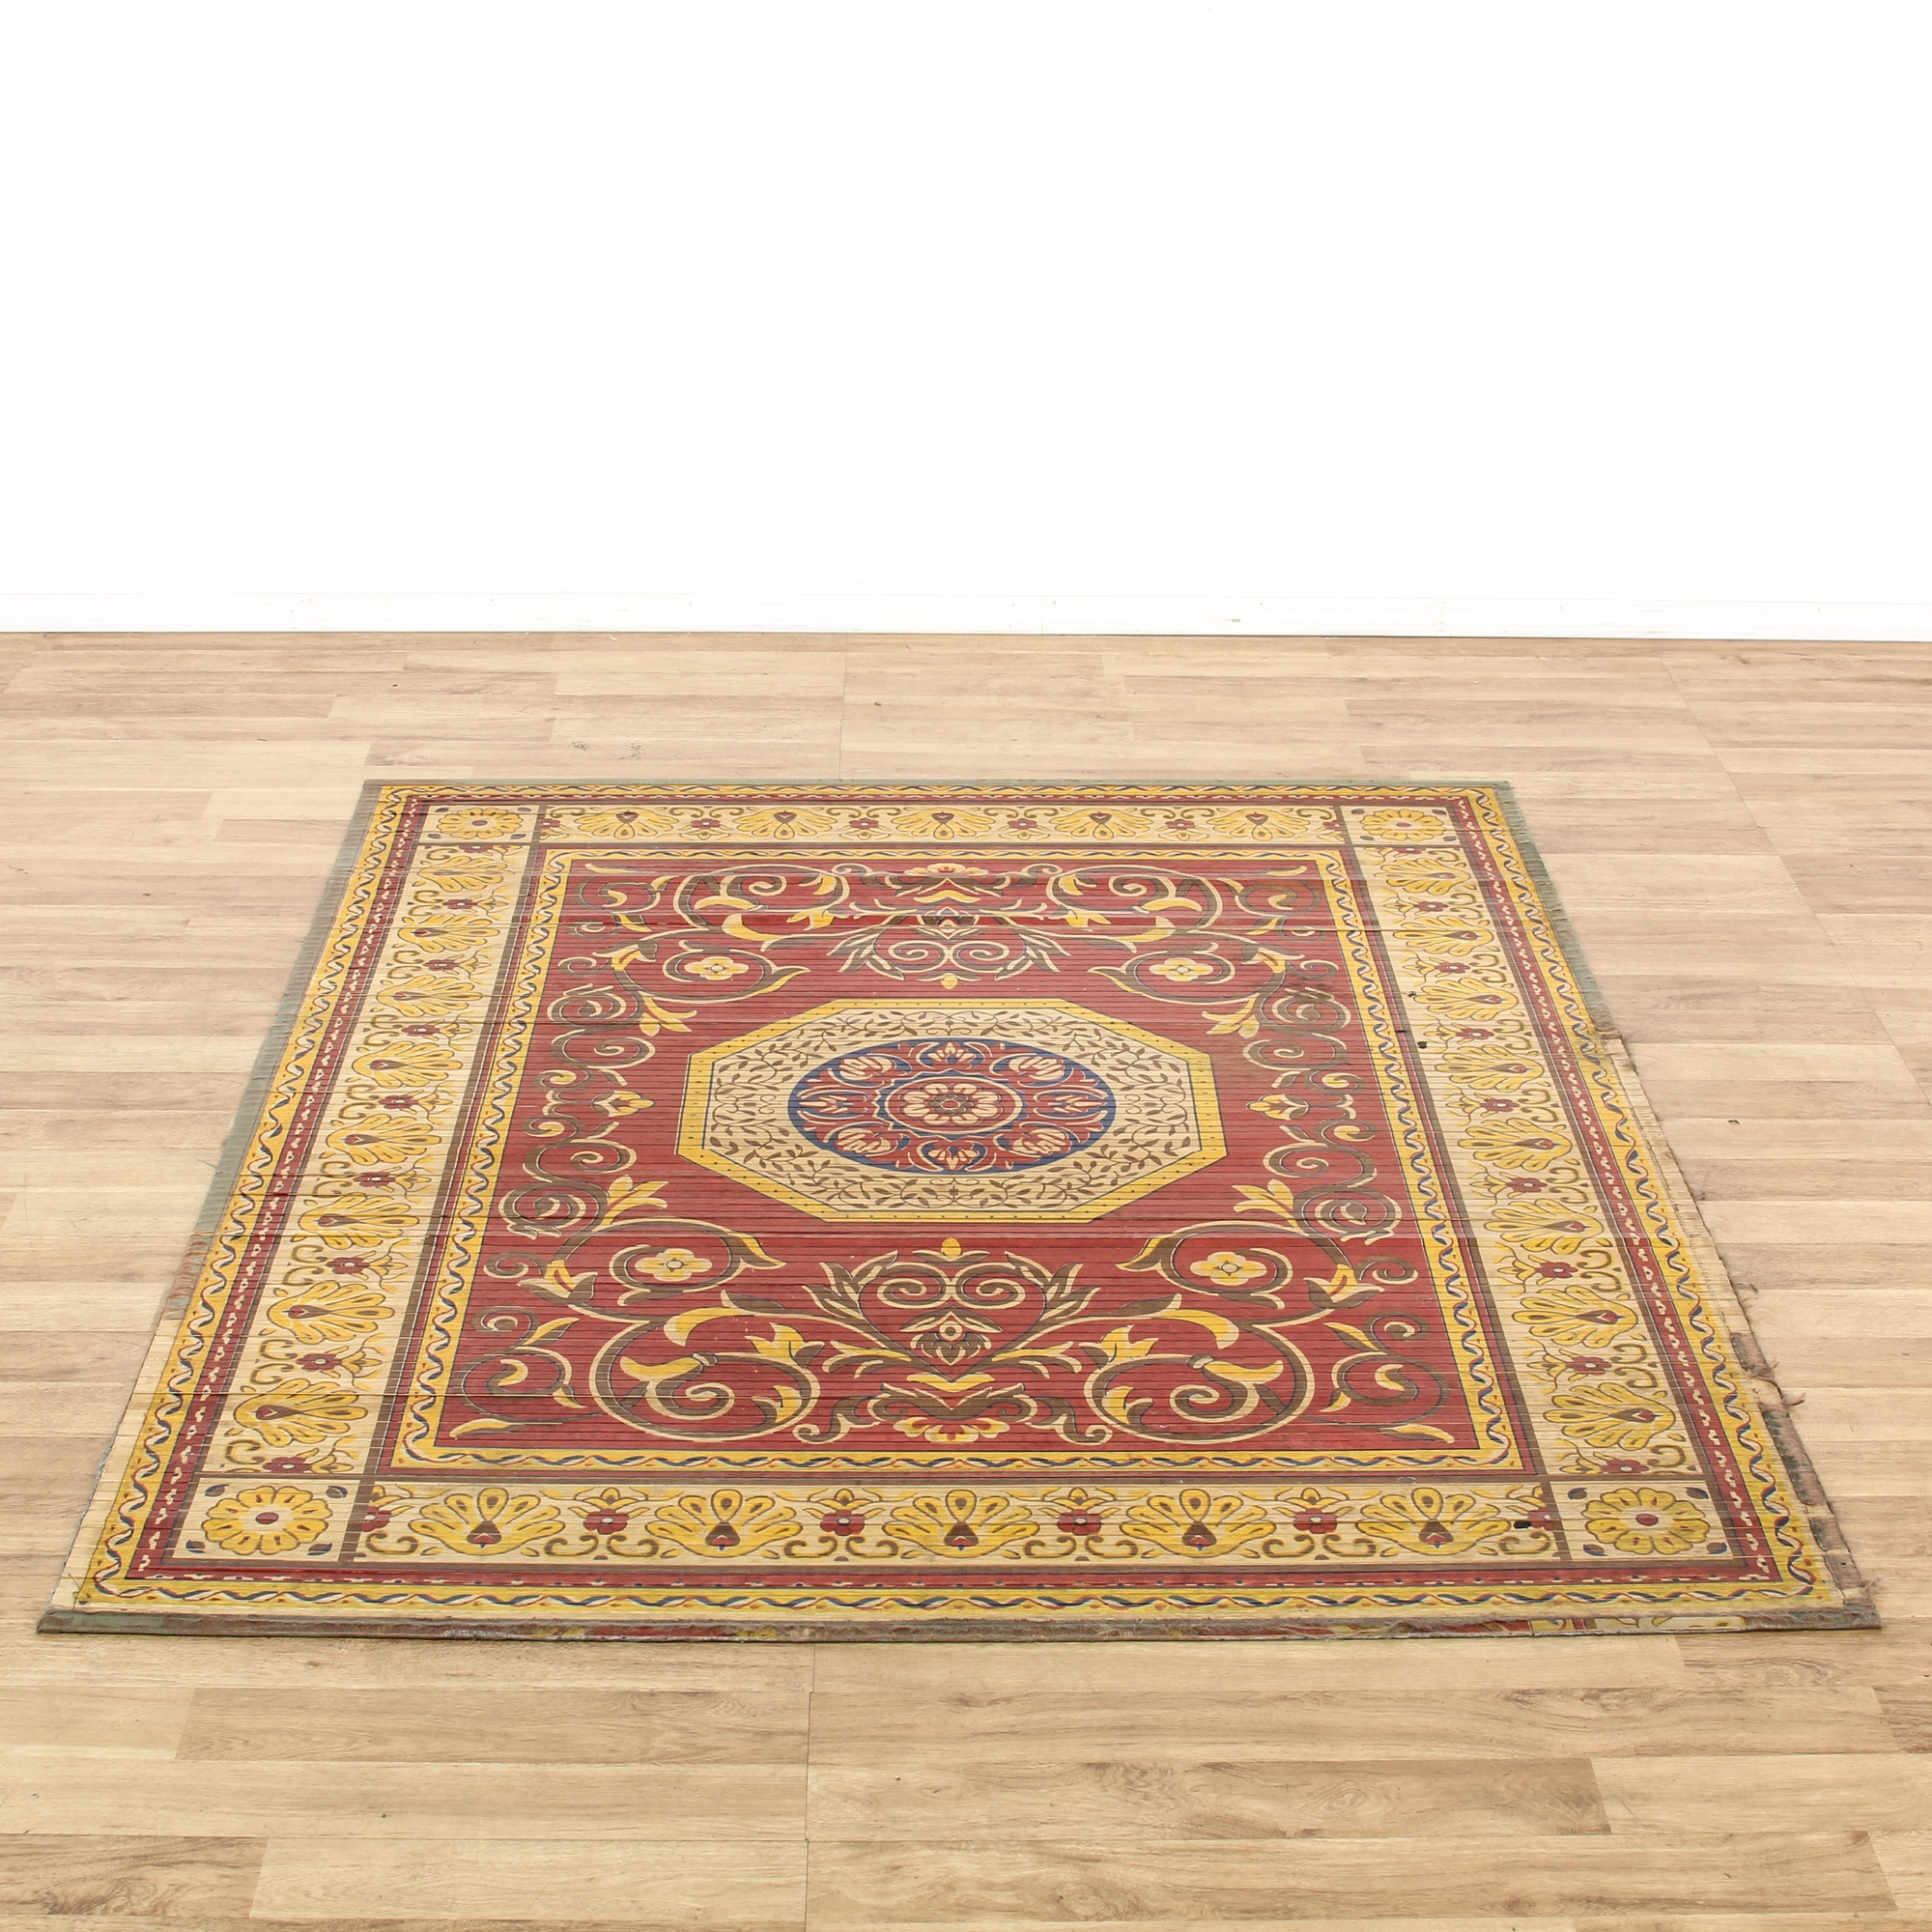 Red & Yellow Painted Wood Slat Area Rug